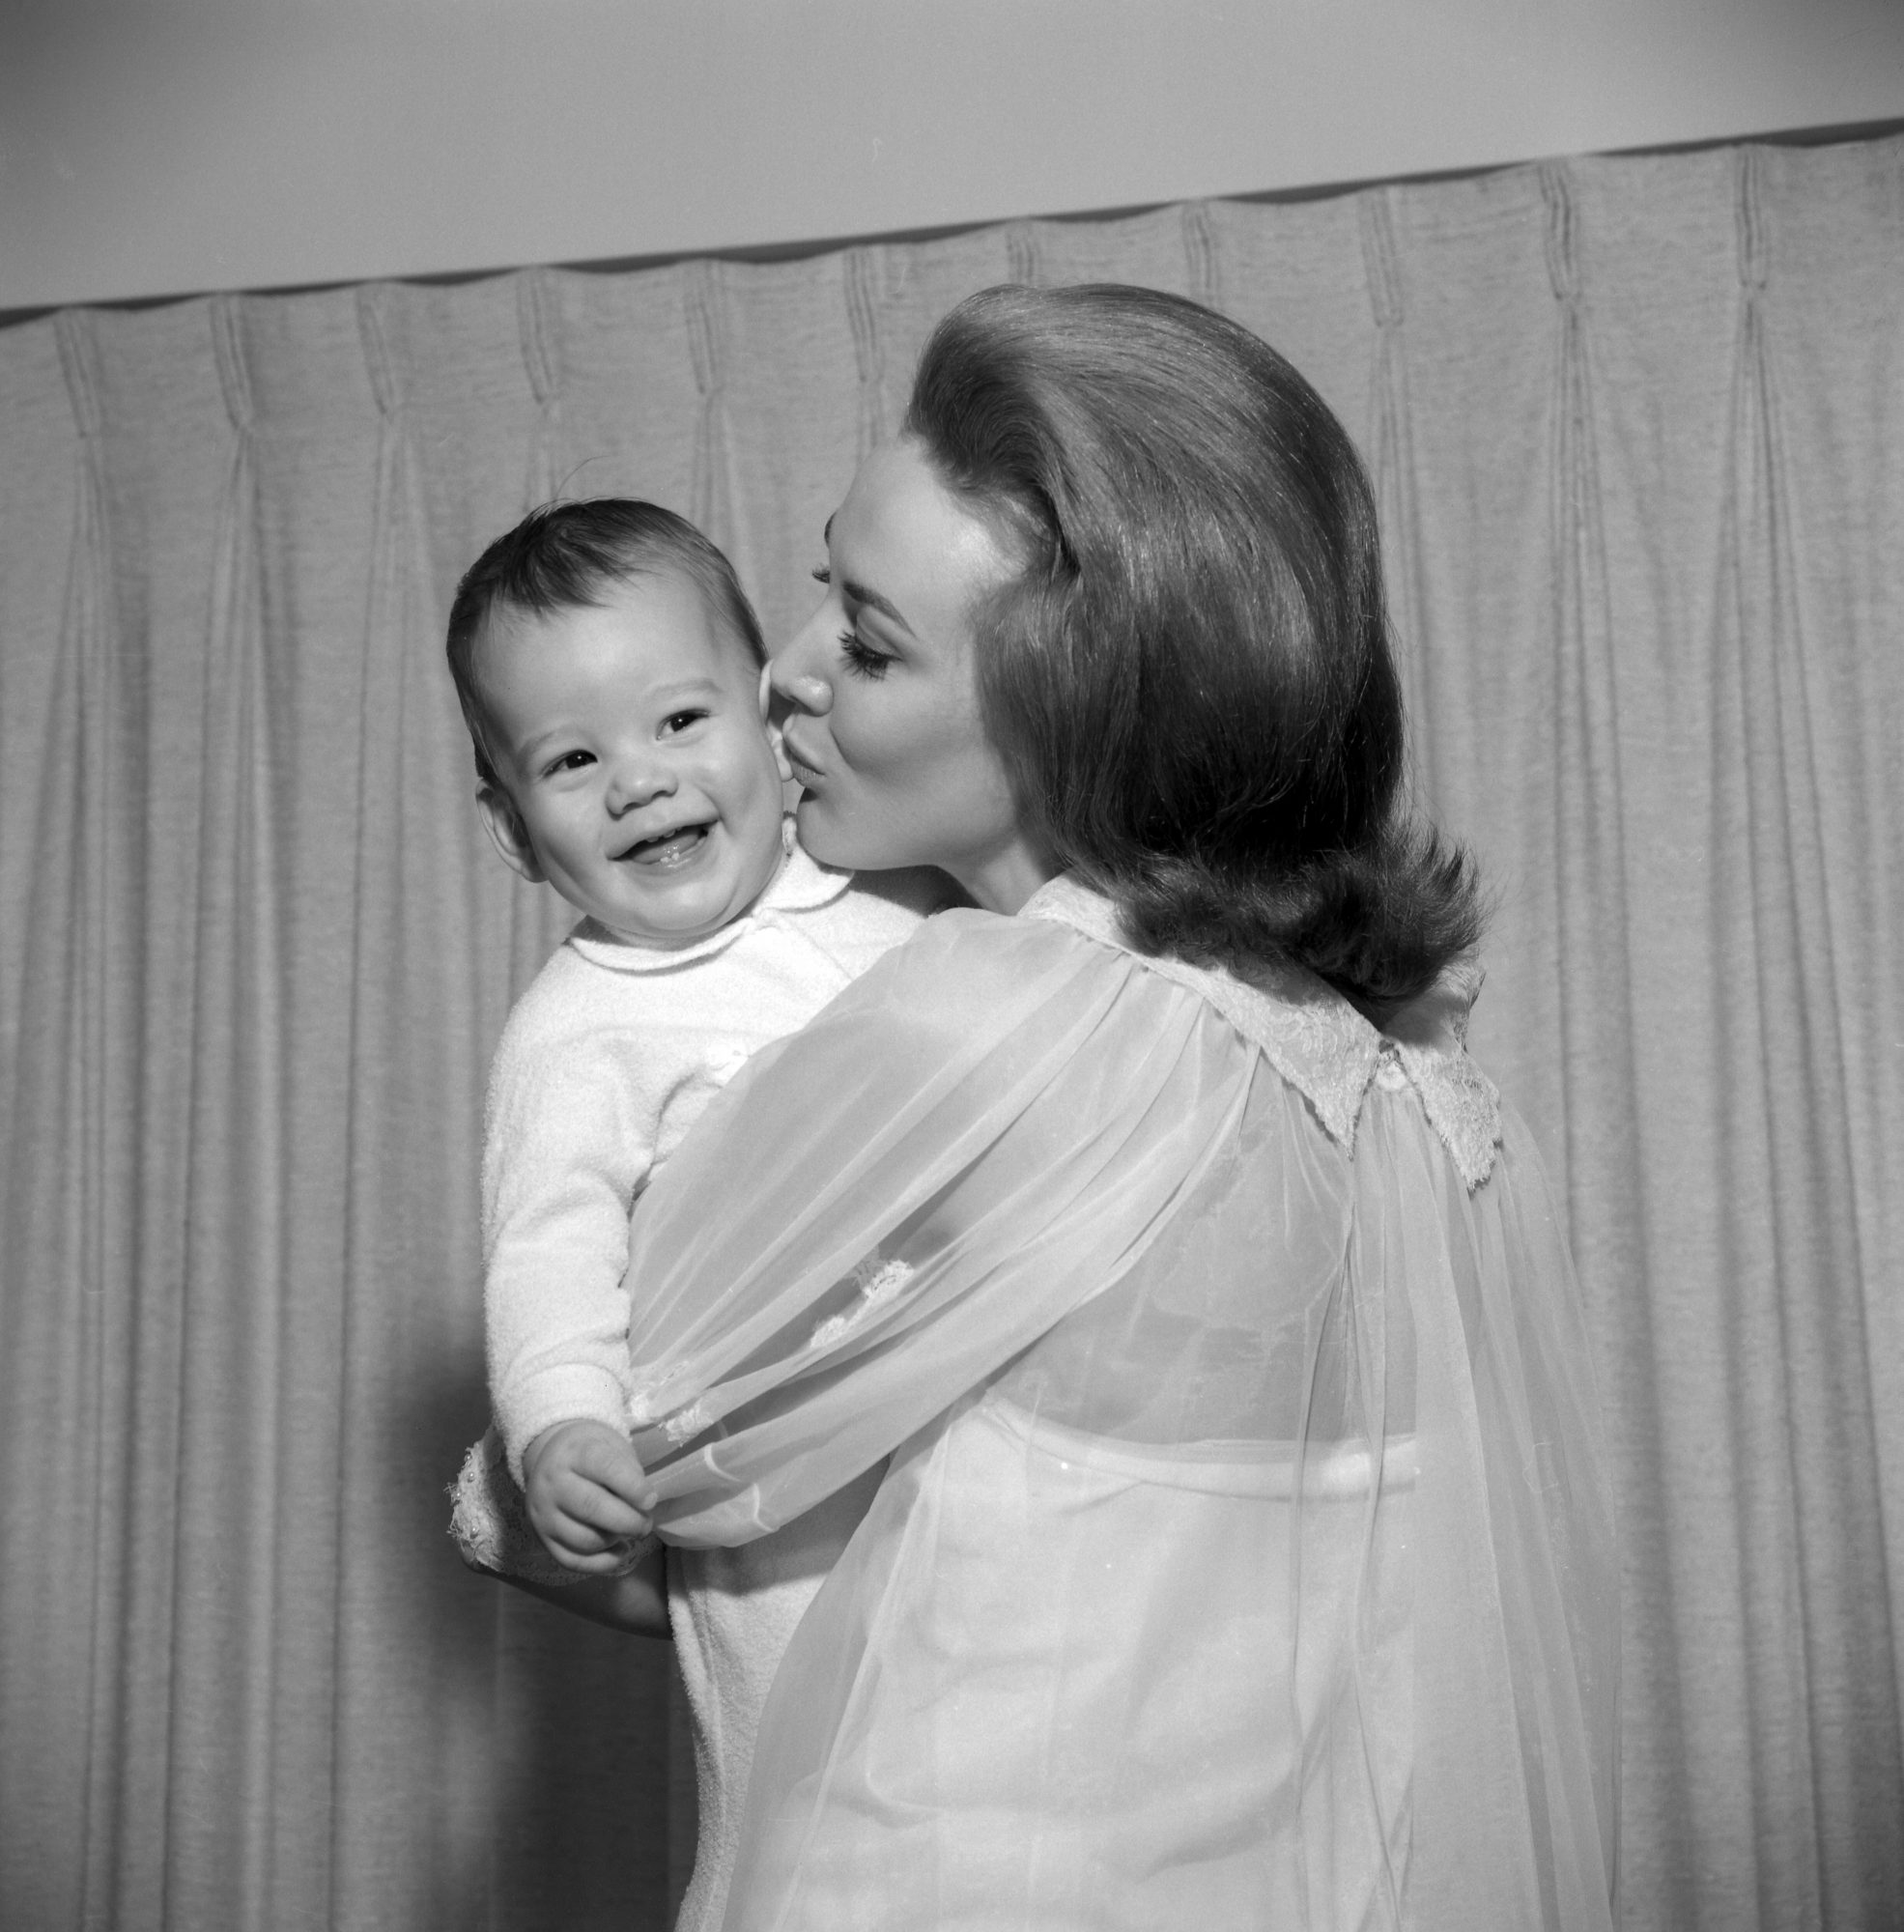 Mother's Day Poems to Show Your Love and Appreciation